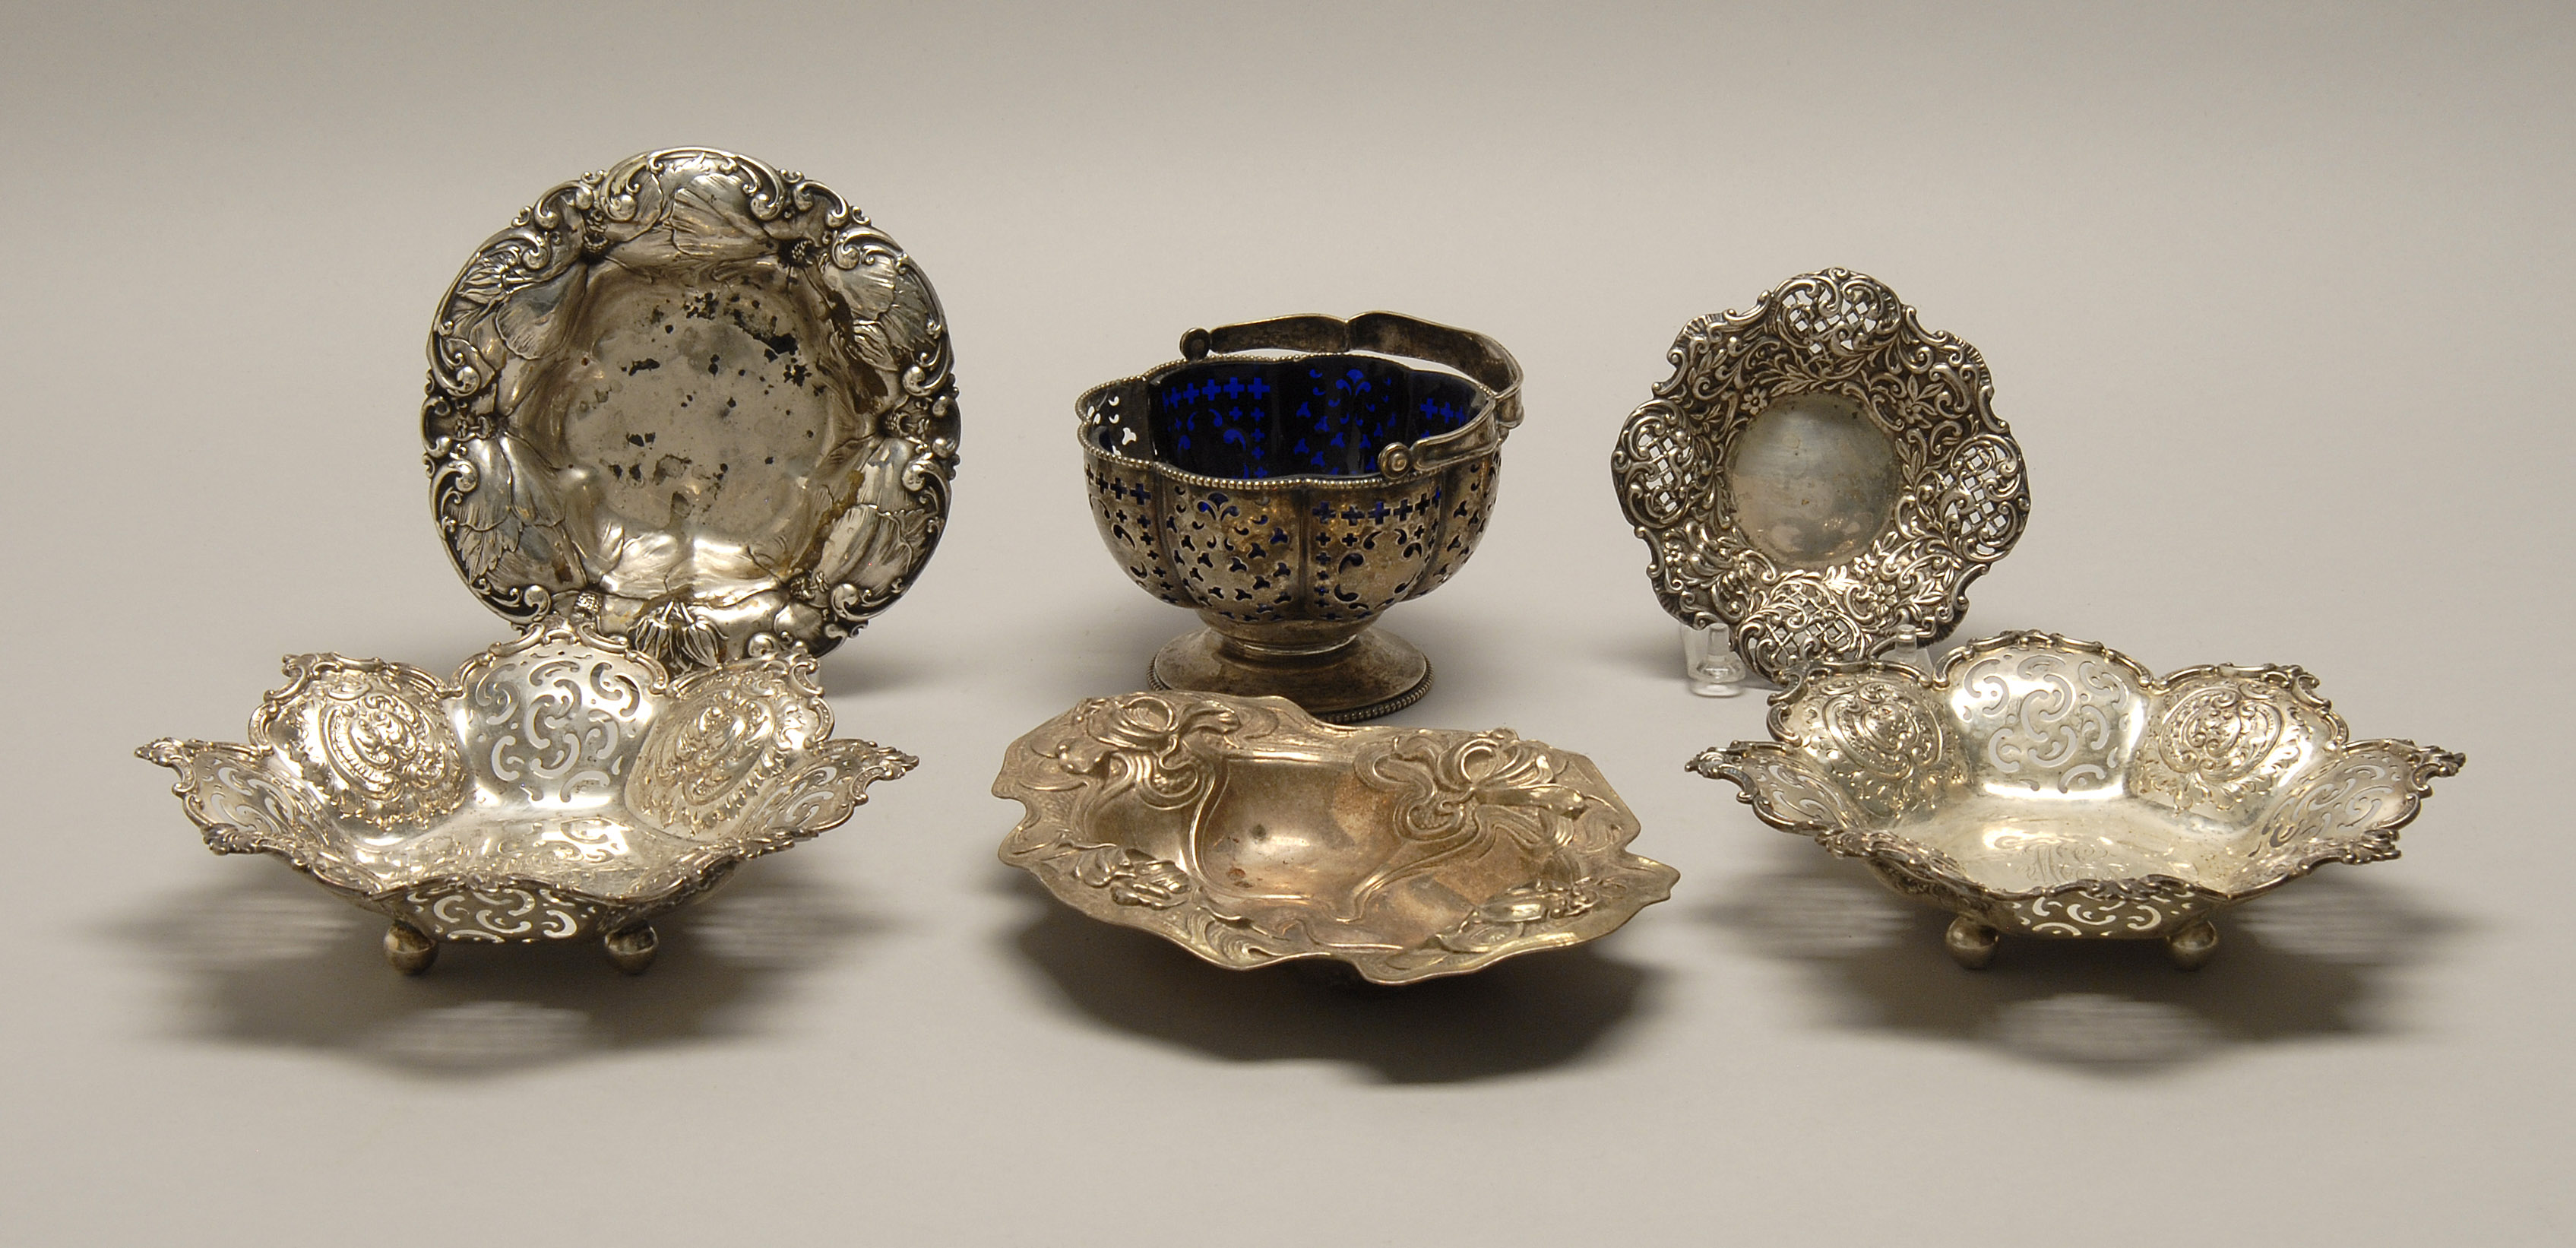 FIVE STERLING SILVER CANDY DISHES AND A CANDY